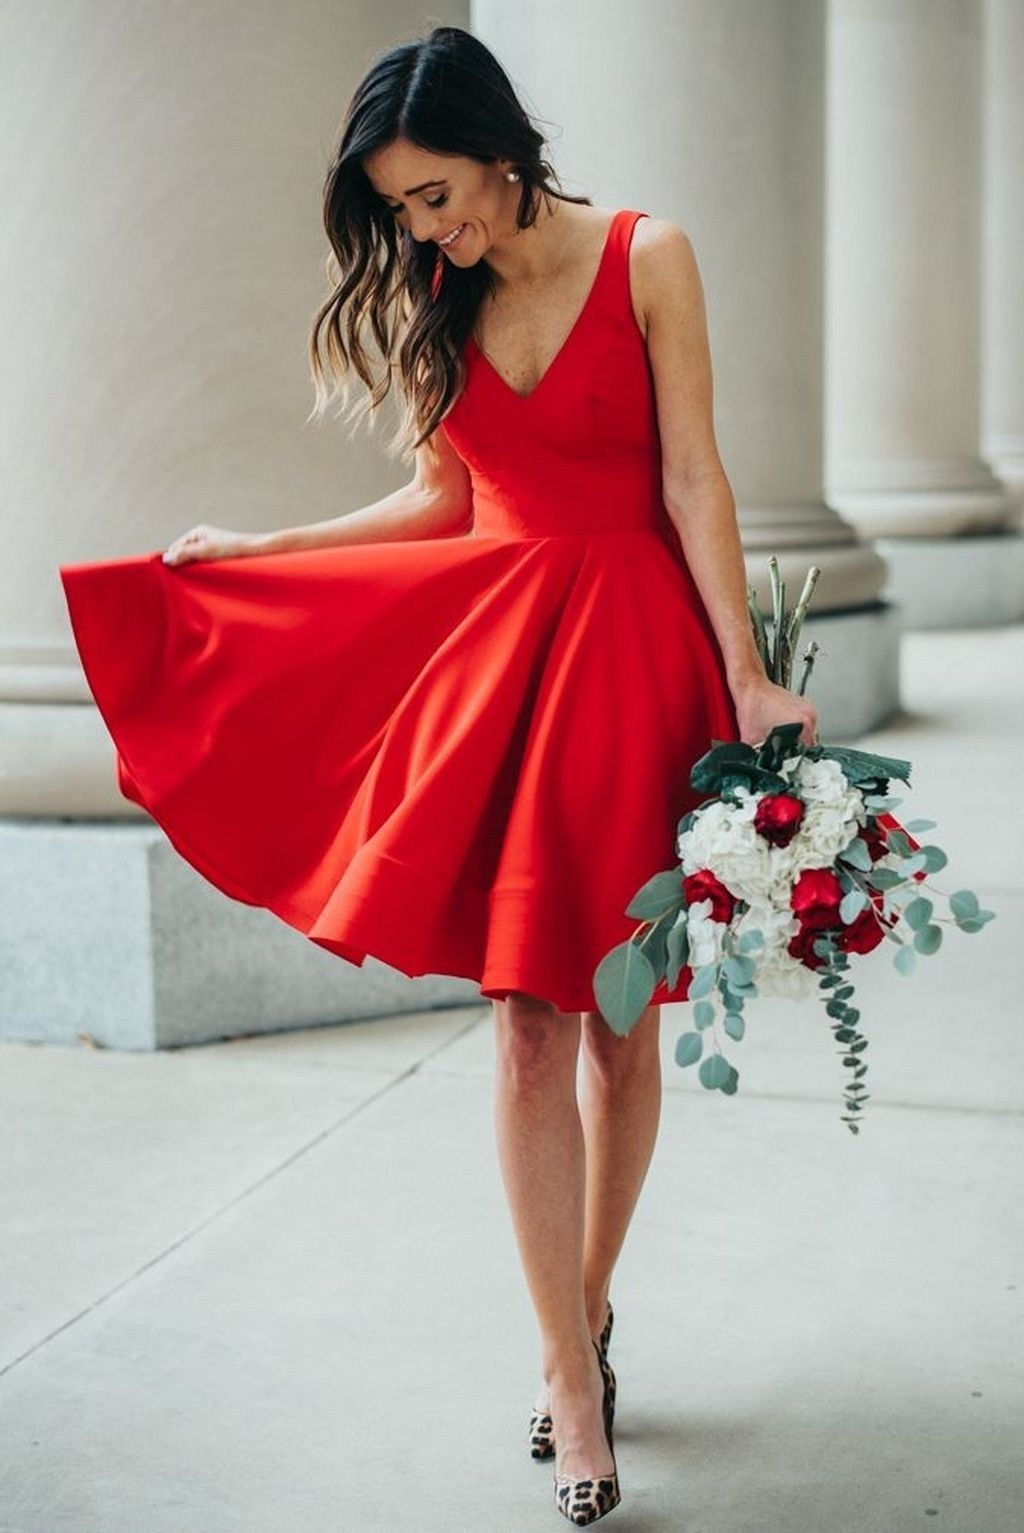 perfect look for hot date / red dress and heels